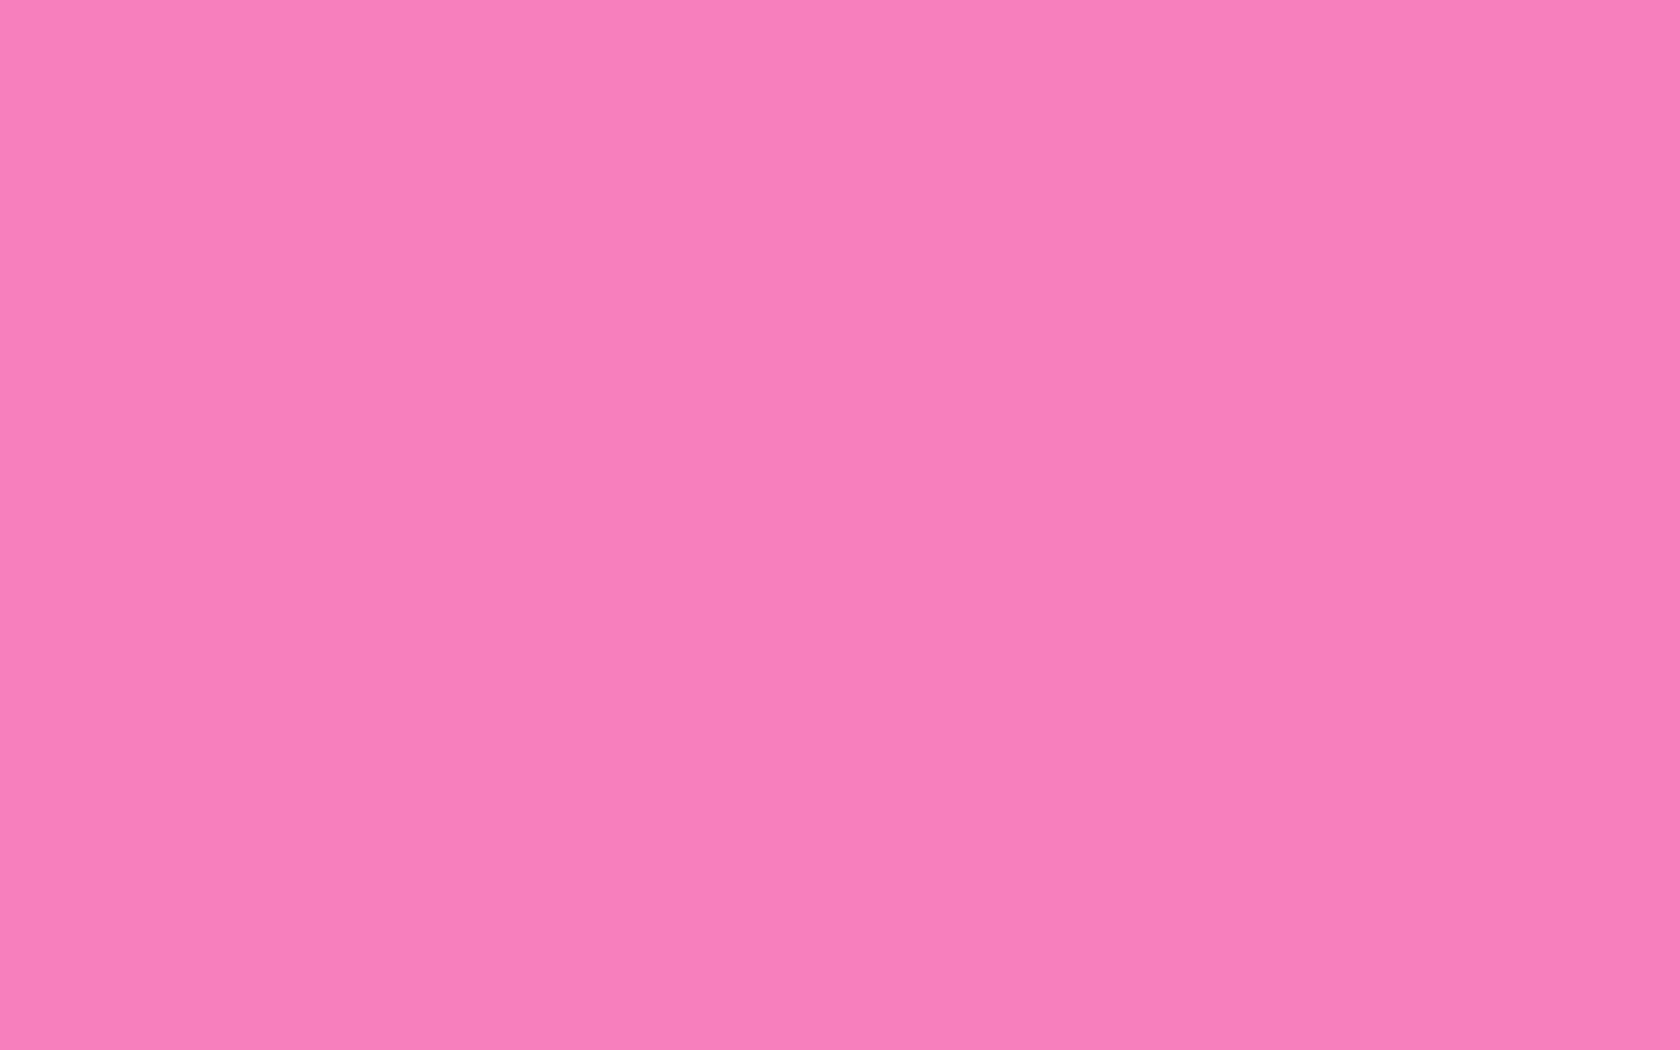 1680x1050 Persian Pink Solid Color Background